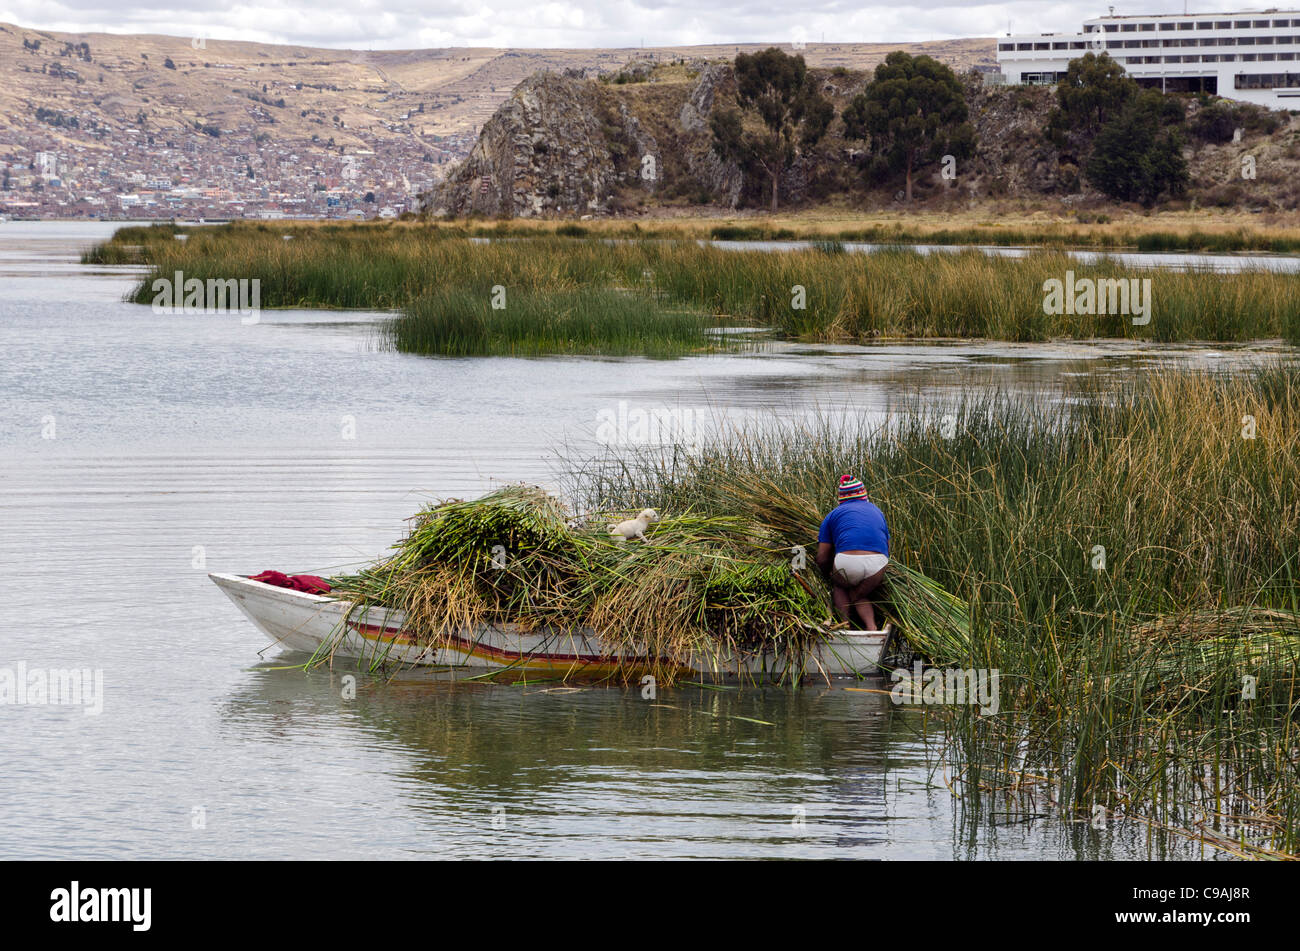 Man collecting reeds on a boat nearby Uros island floating islands Puno Peru - Stock Image